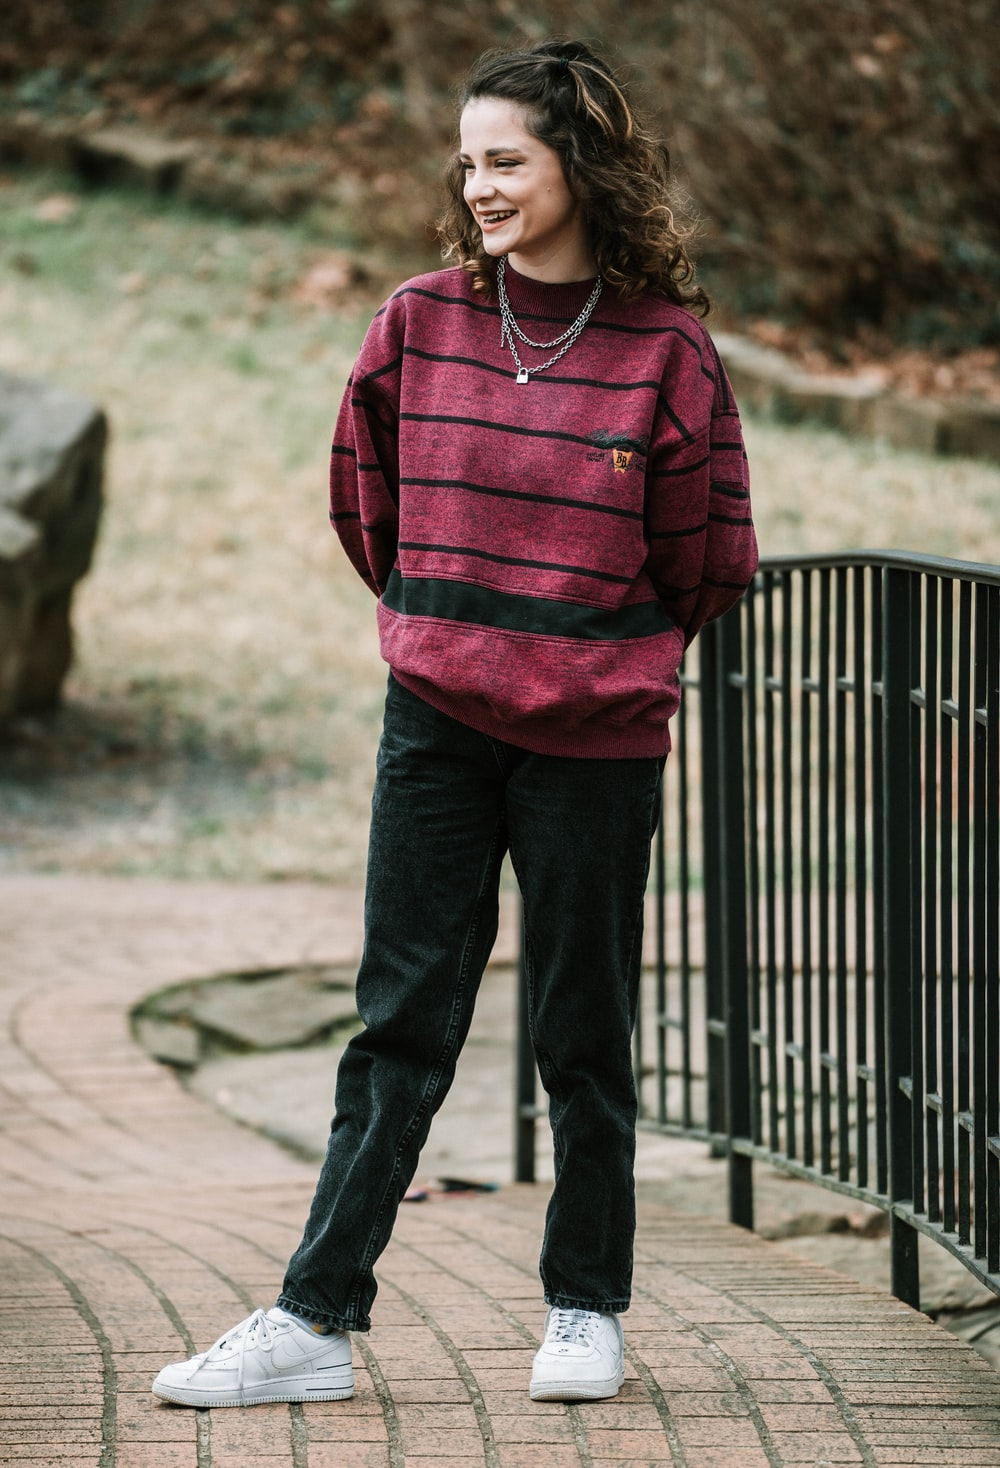 woman in pink and black striped hoodie standing near black metal fence during daytime